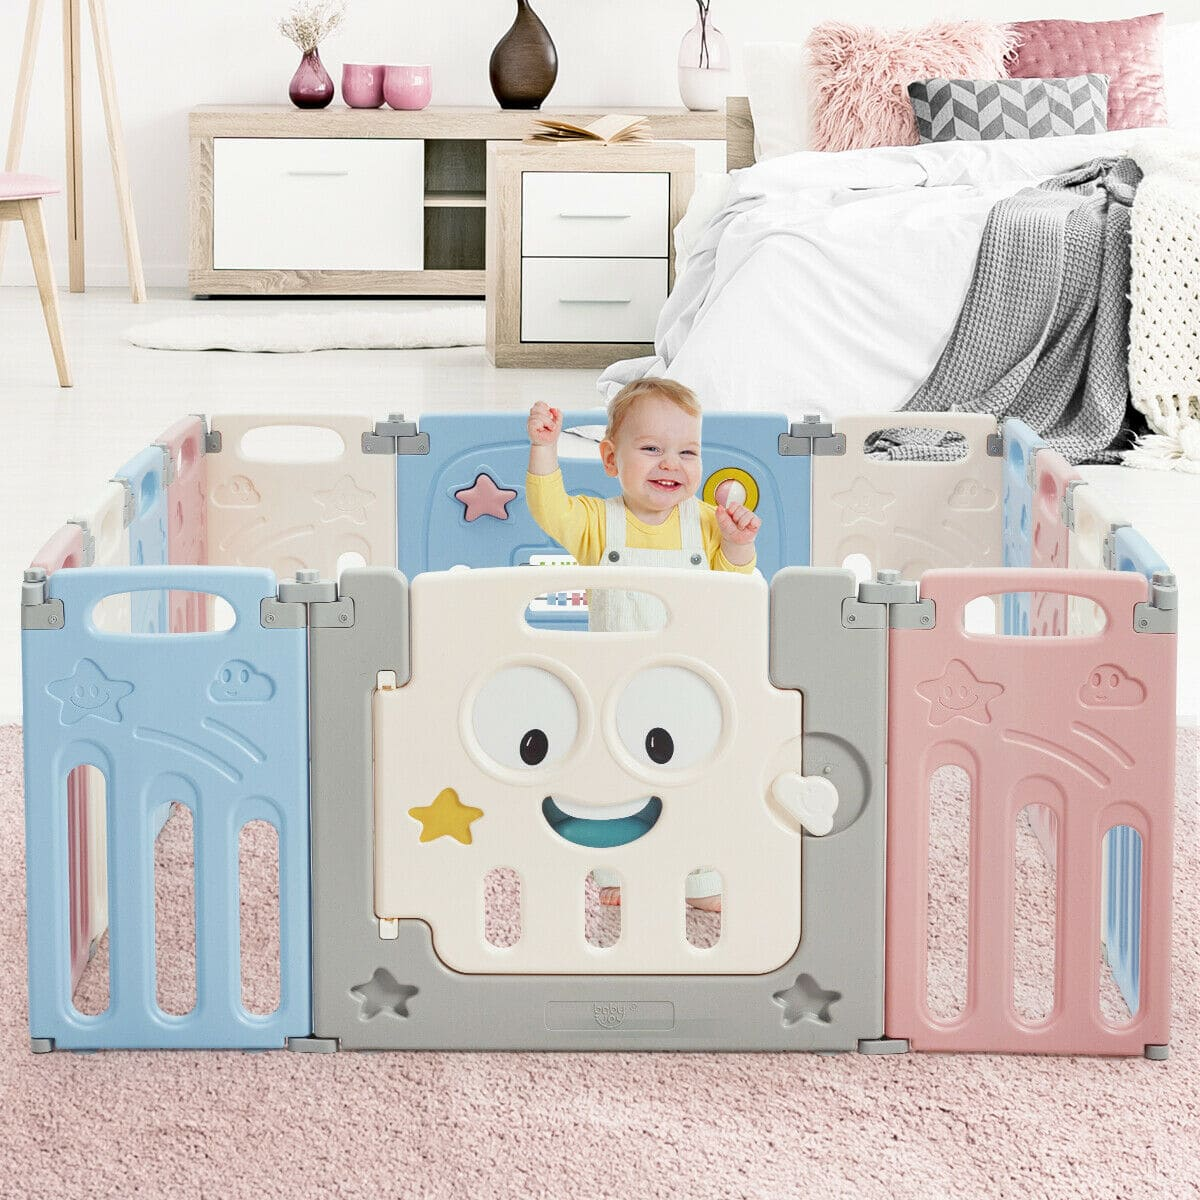 14-Panel Foldable Baby Playpen Kids Activity Centre - FREE SHIPPING